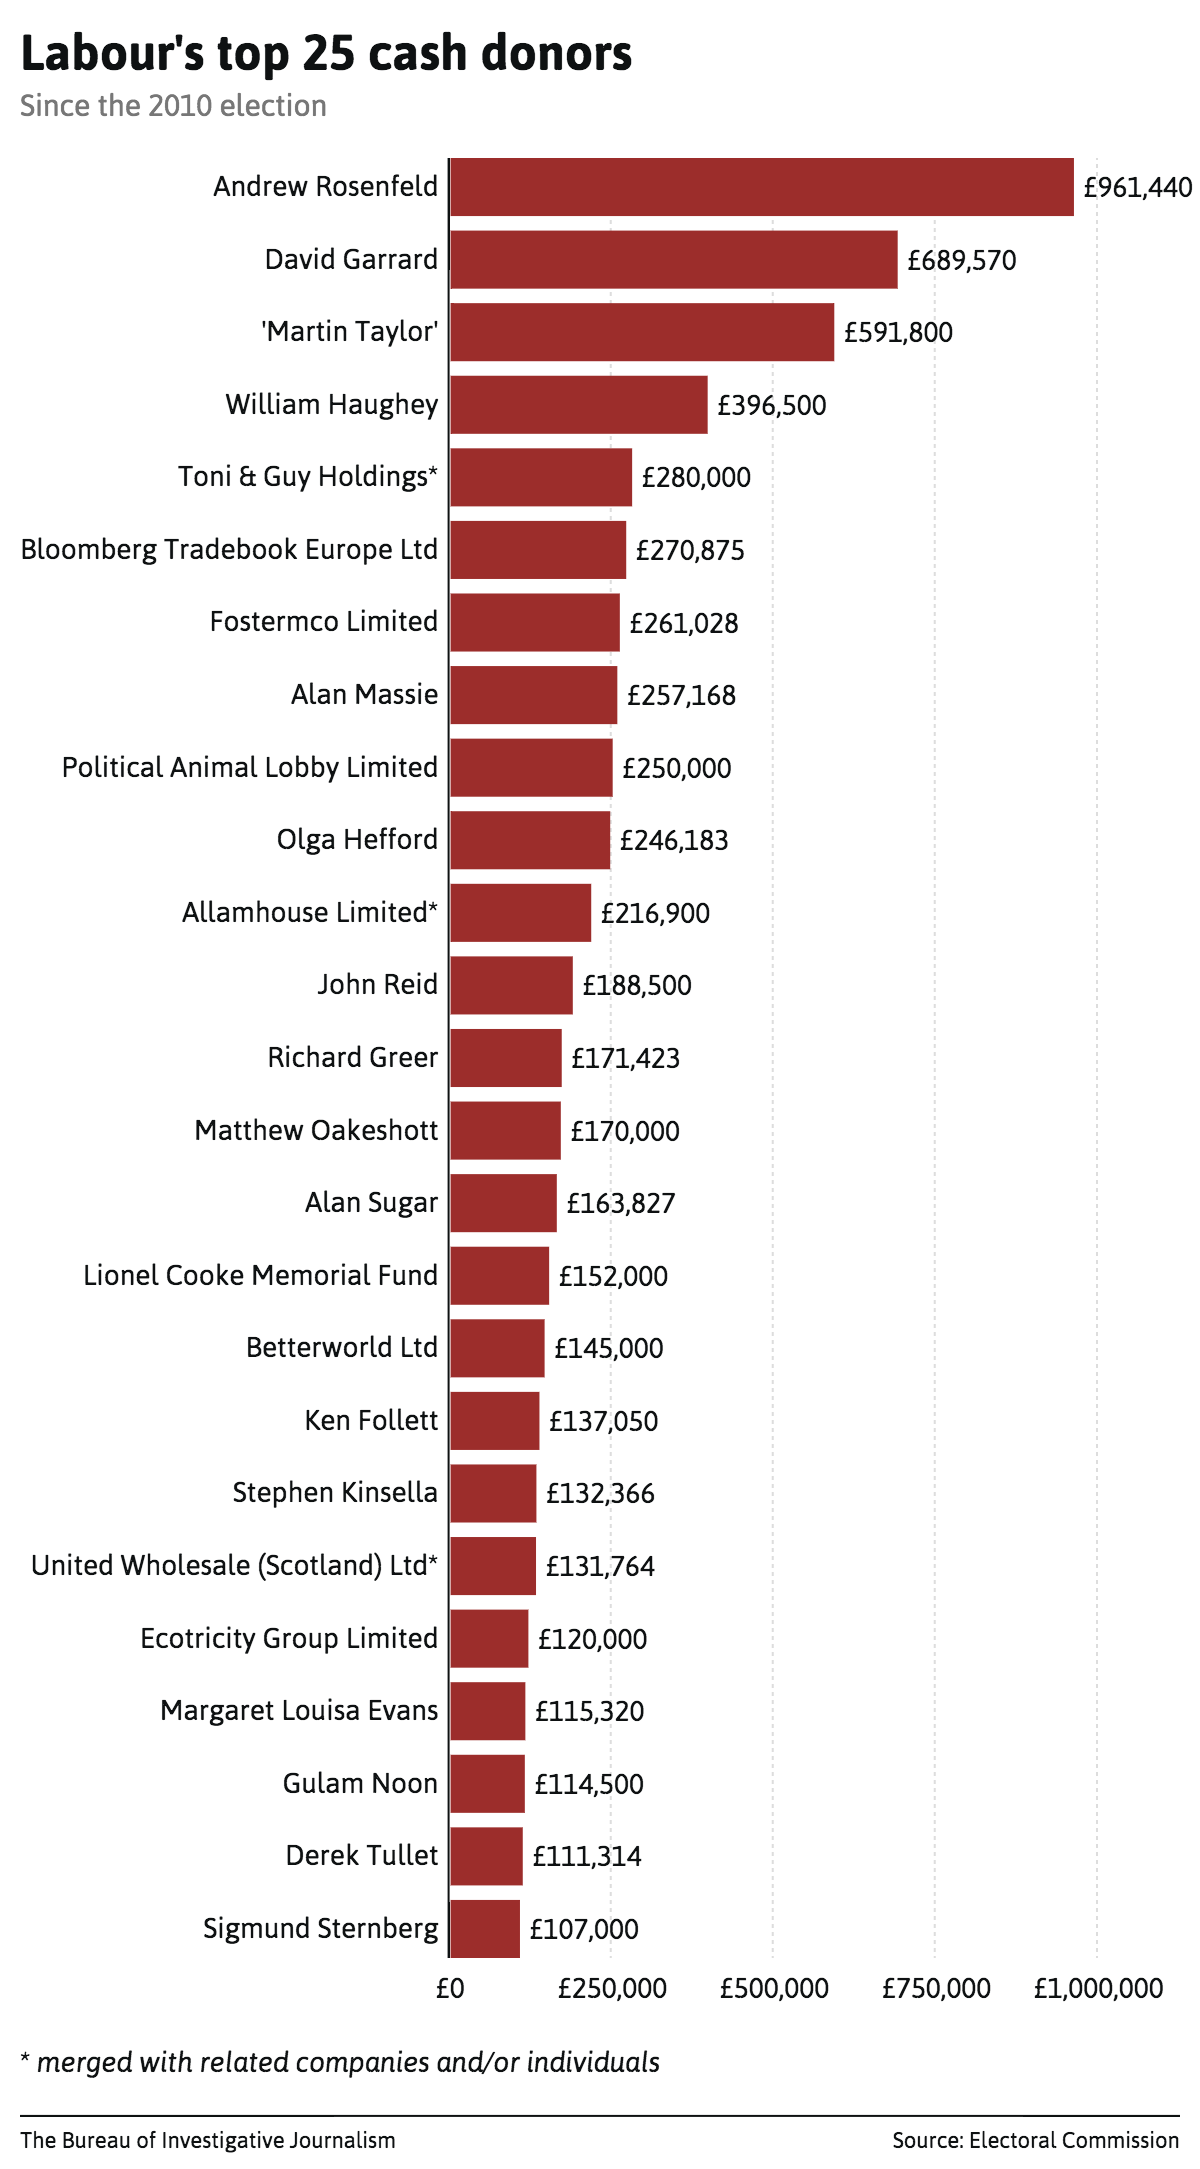 labours-top-25-cash-donors-list